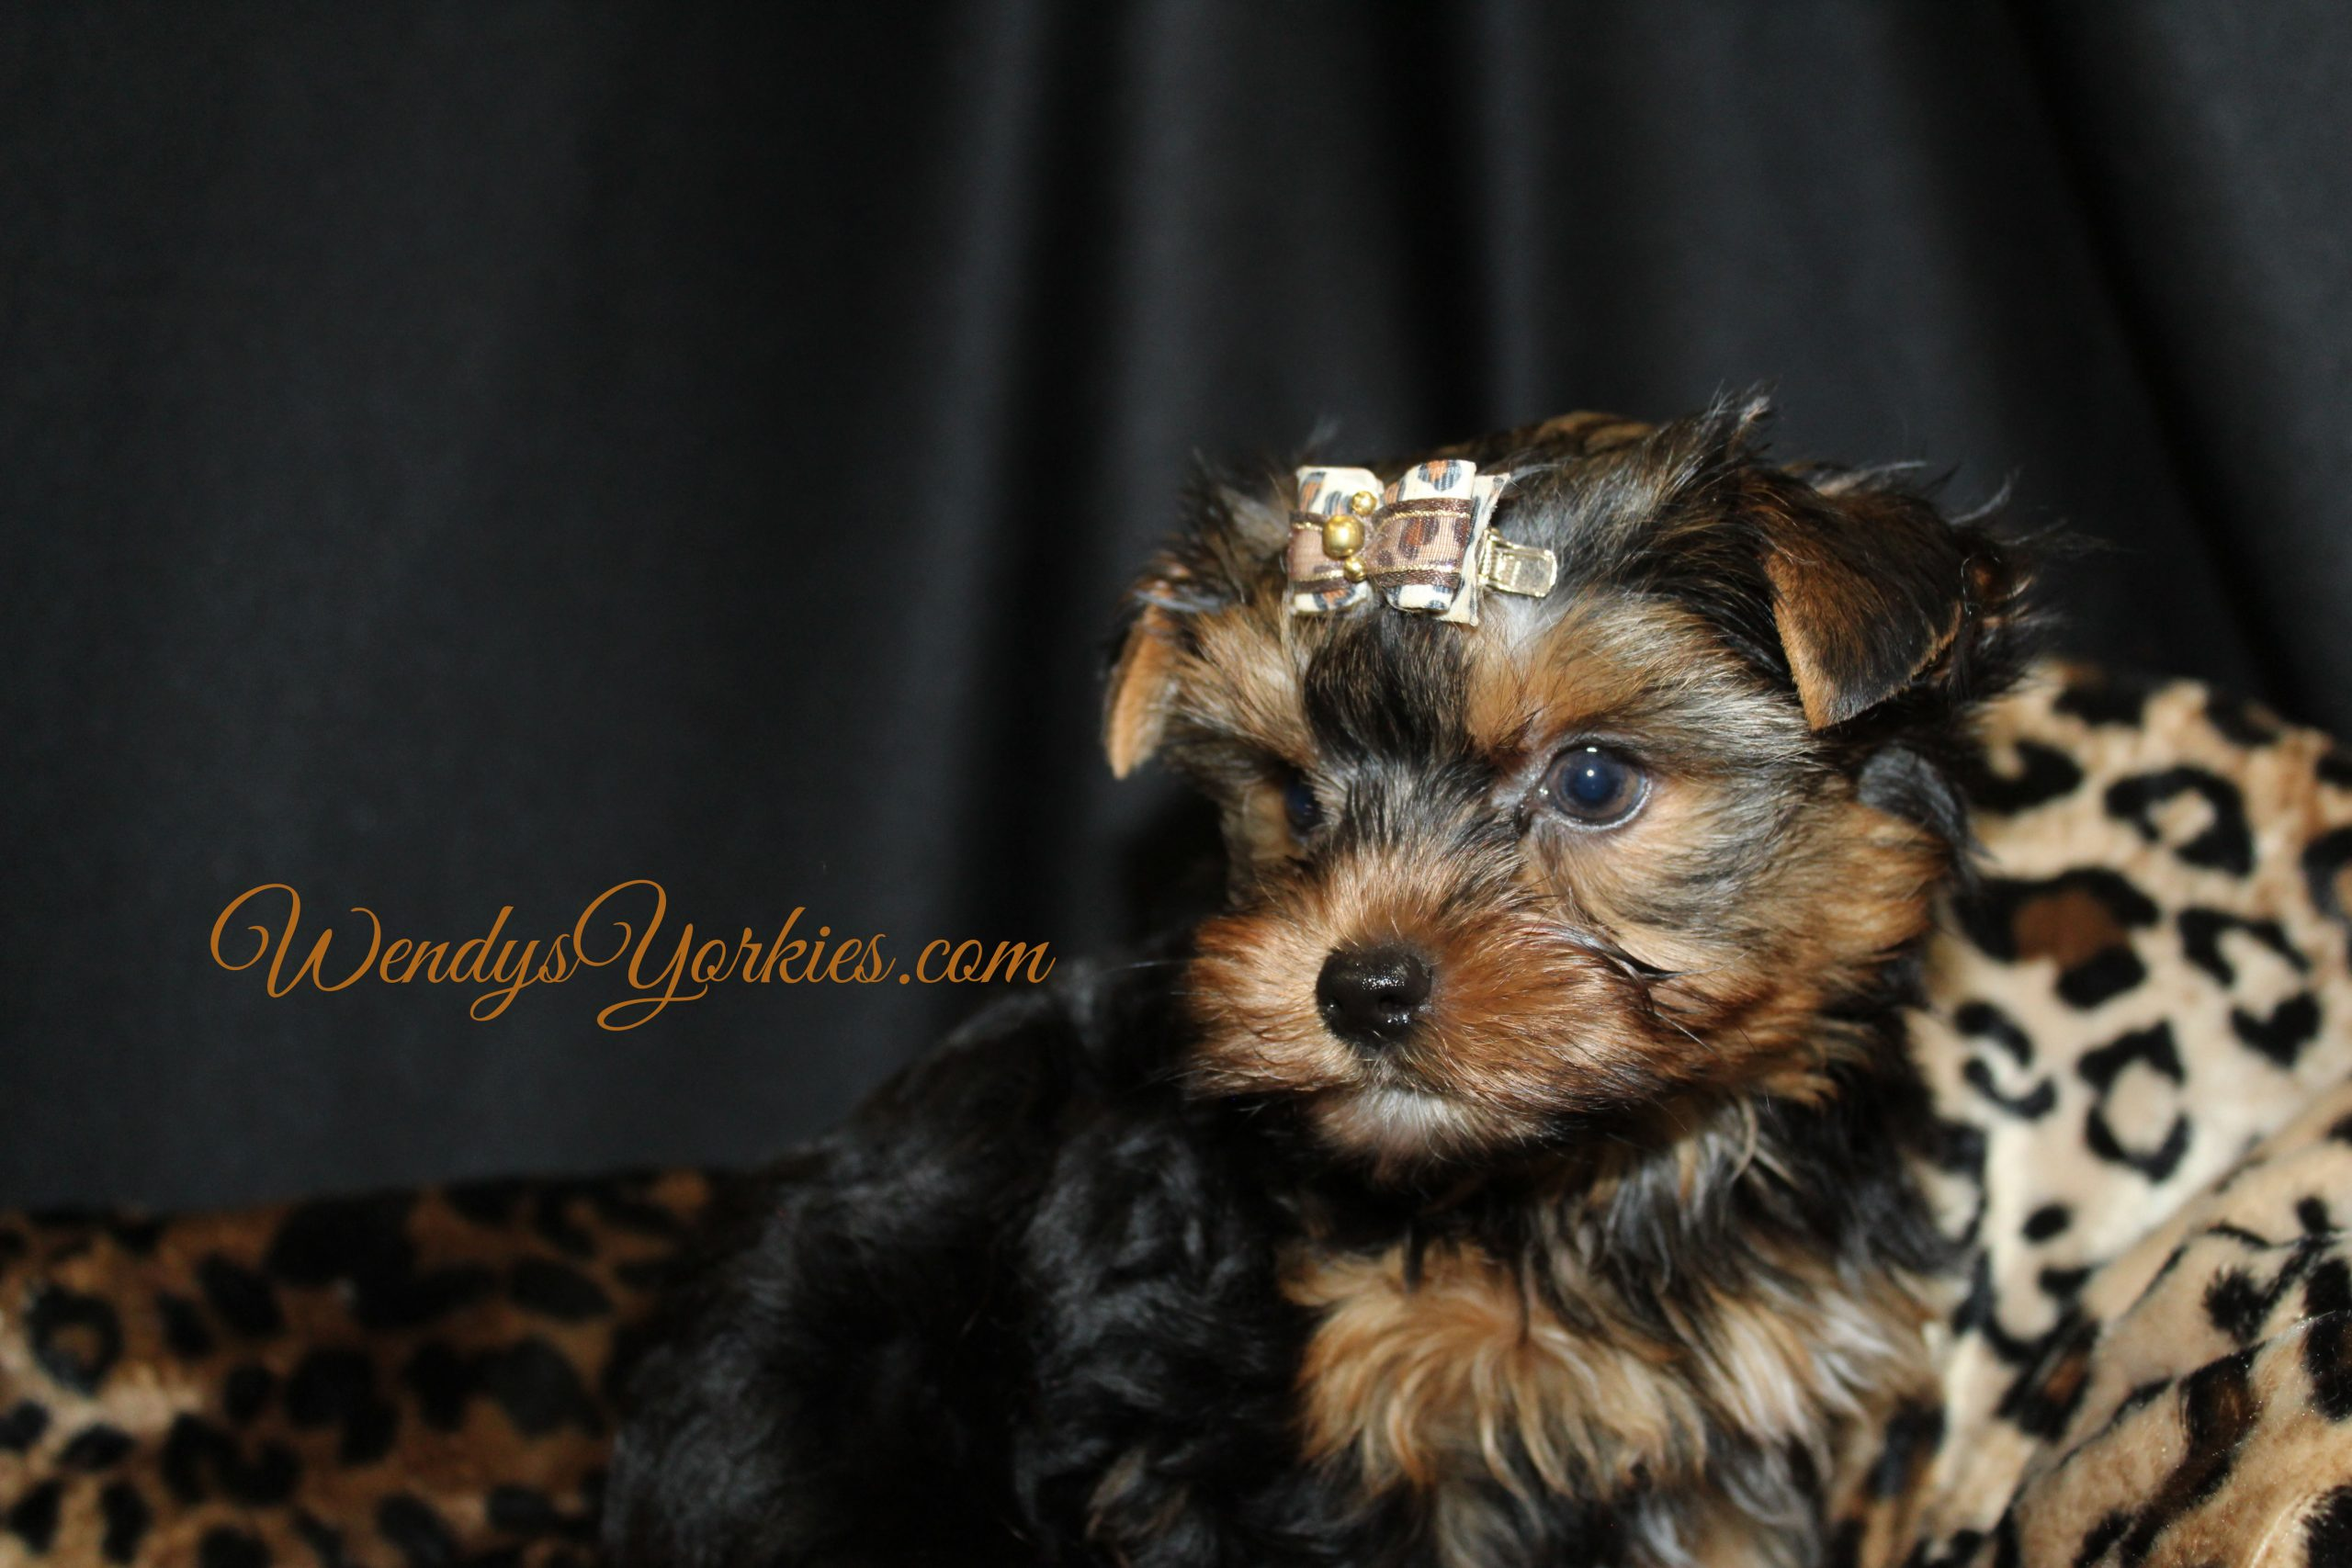 Yorkie puppy for sale in Texas, Bree & Ruger m2, WendysYorkies.com